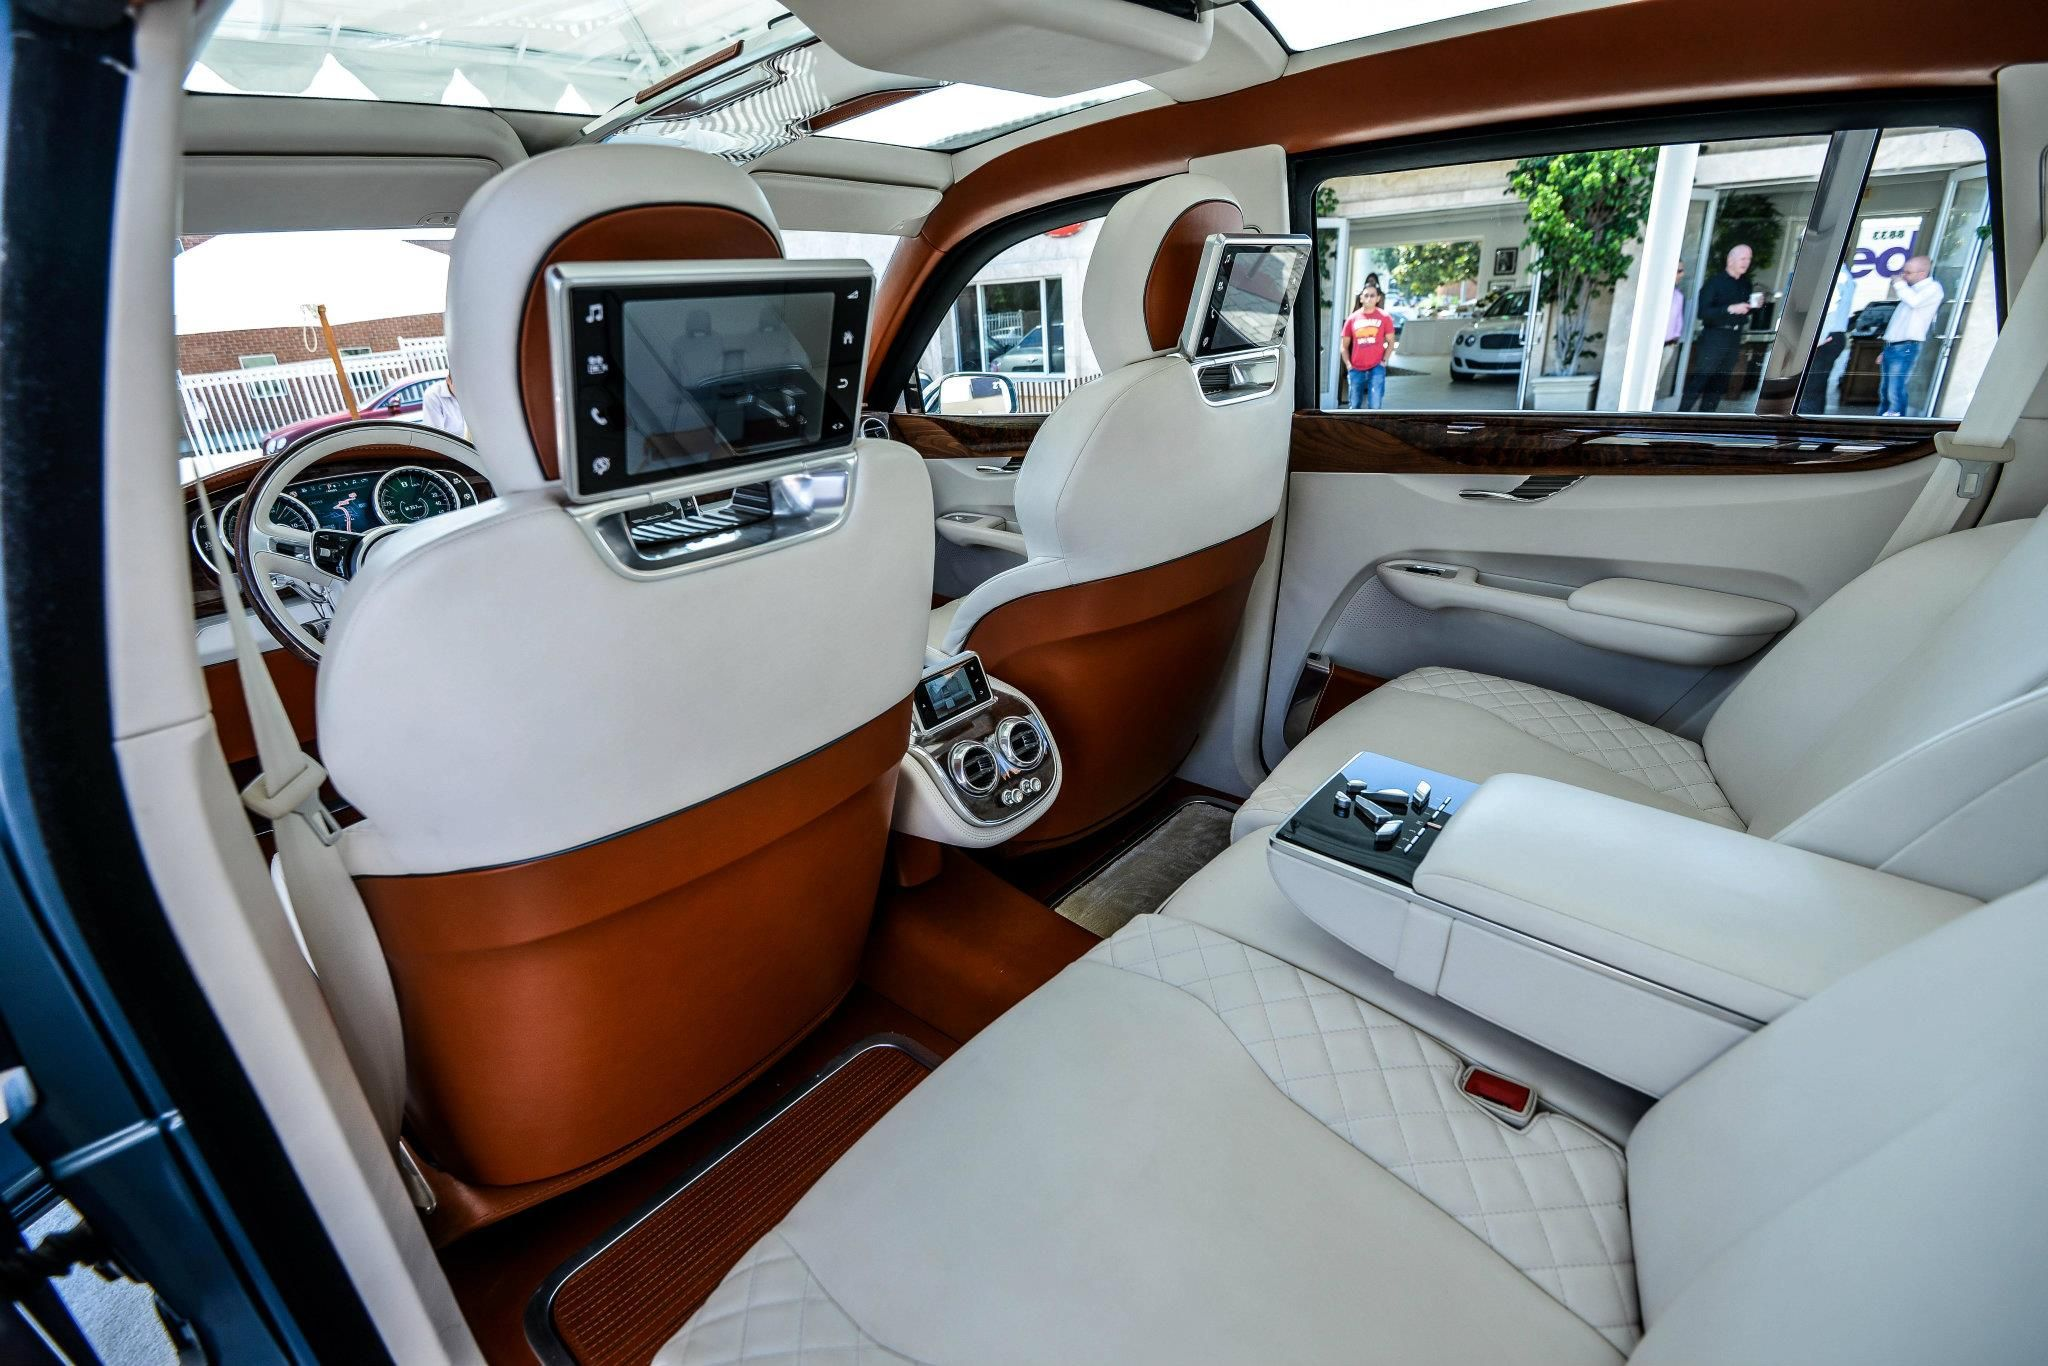 bentley suv in high definition photo luxury car interiors love cars what would you drive. Black Bedroom Furniture Sets. Home Design Ideas